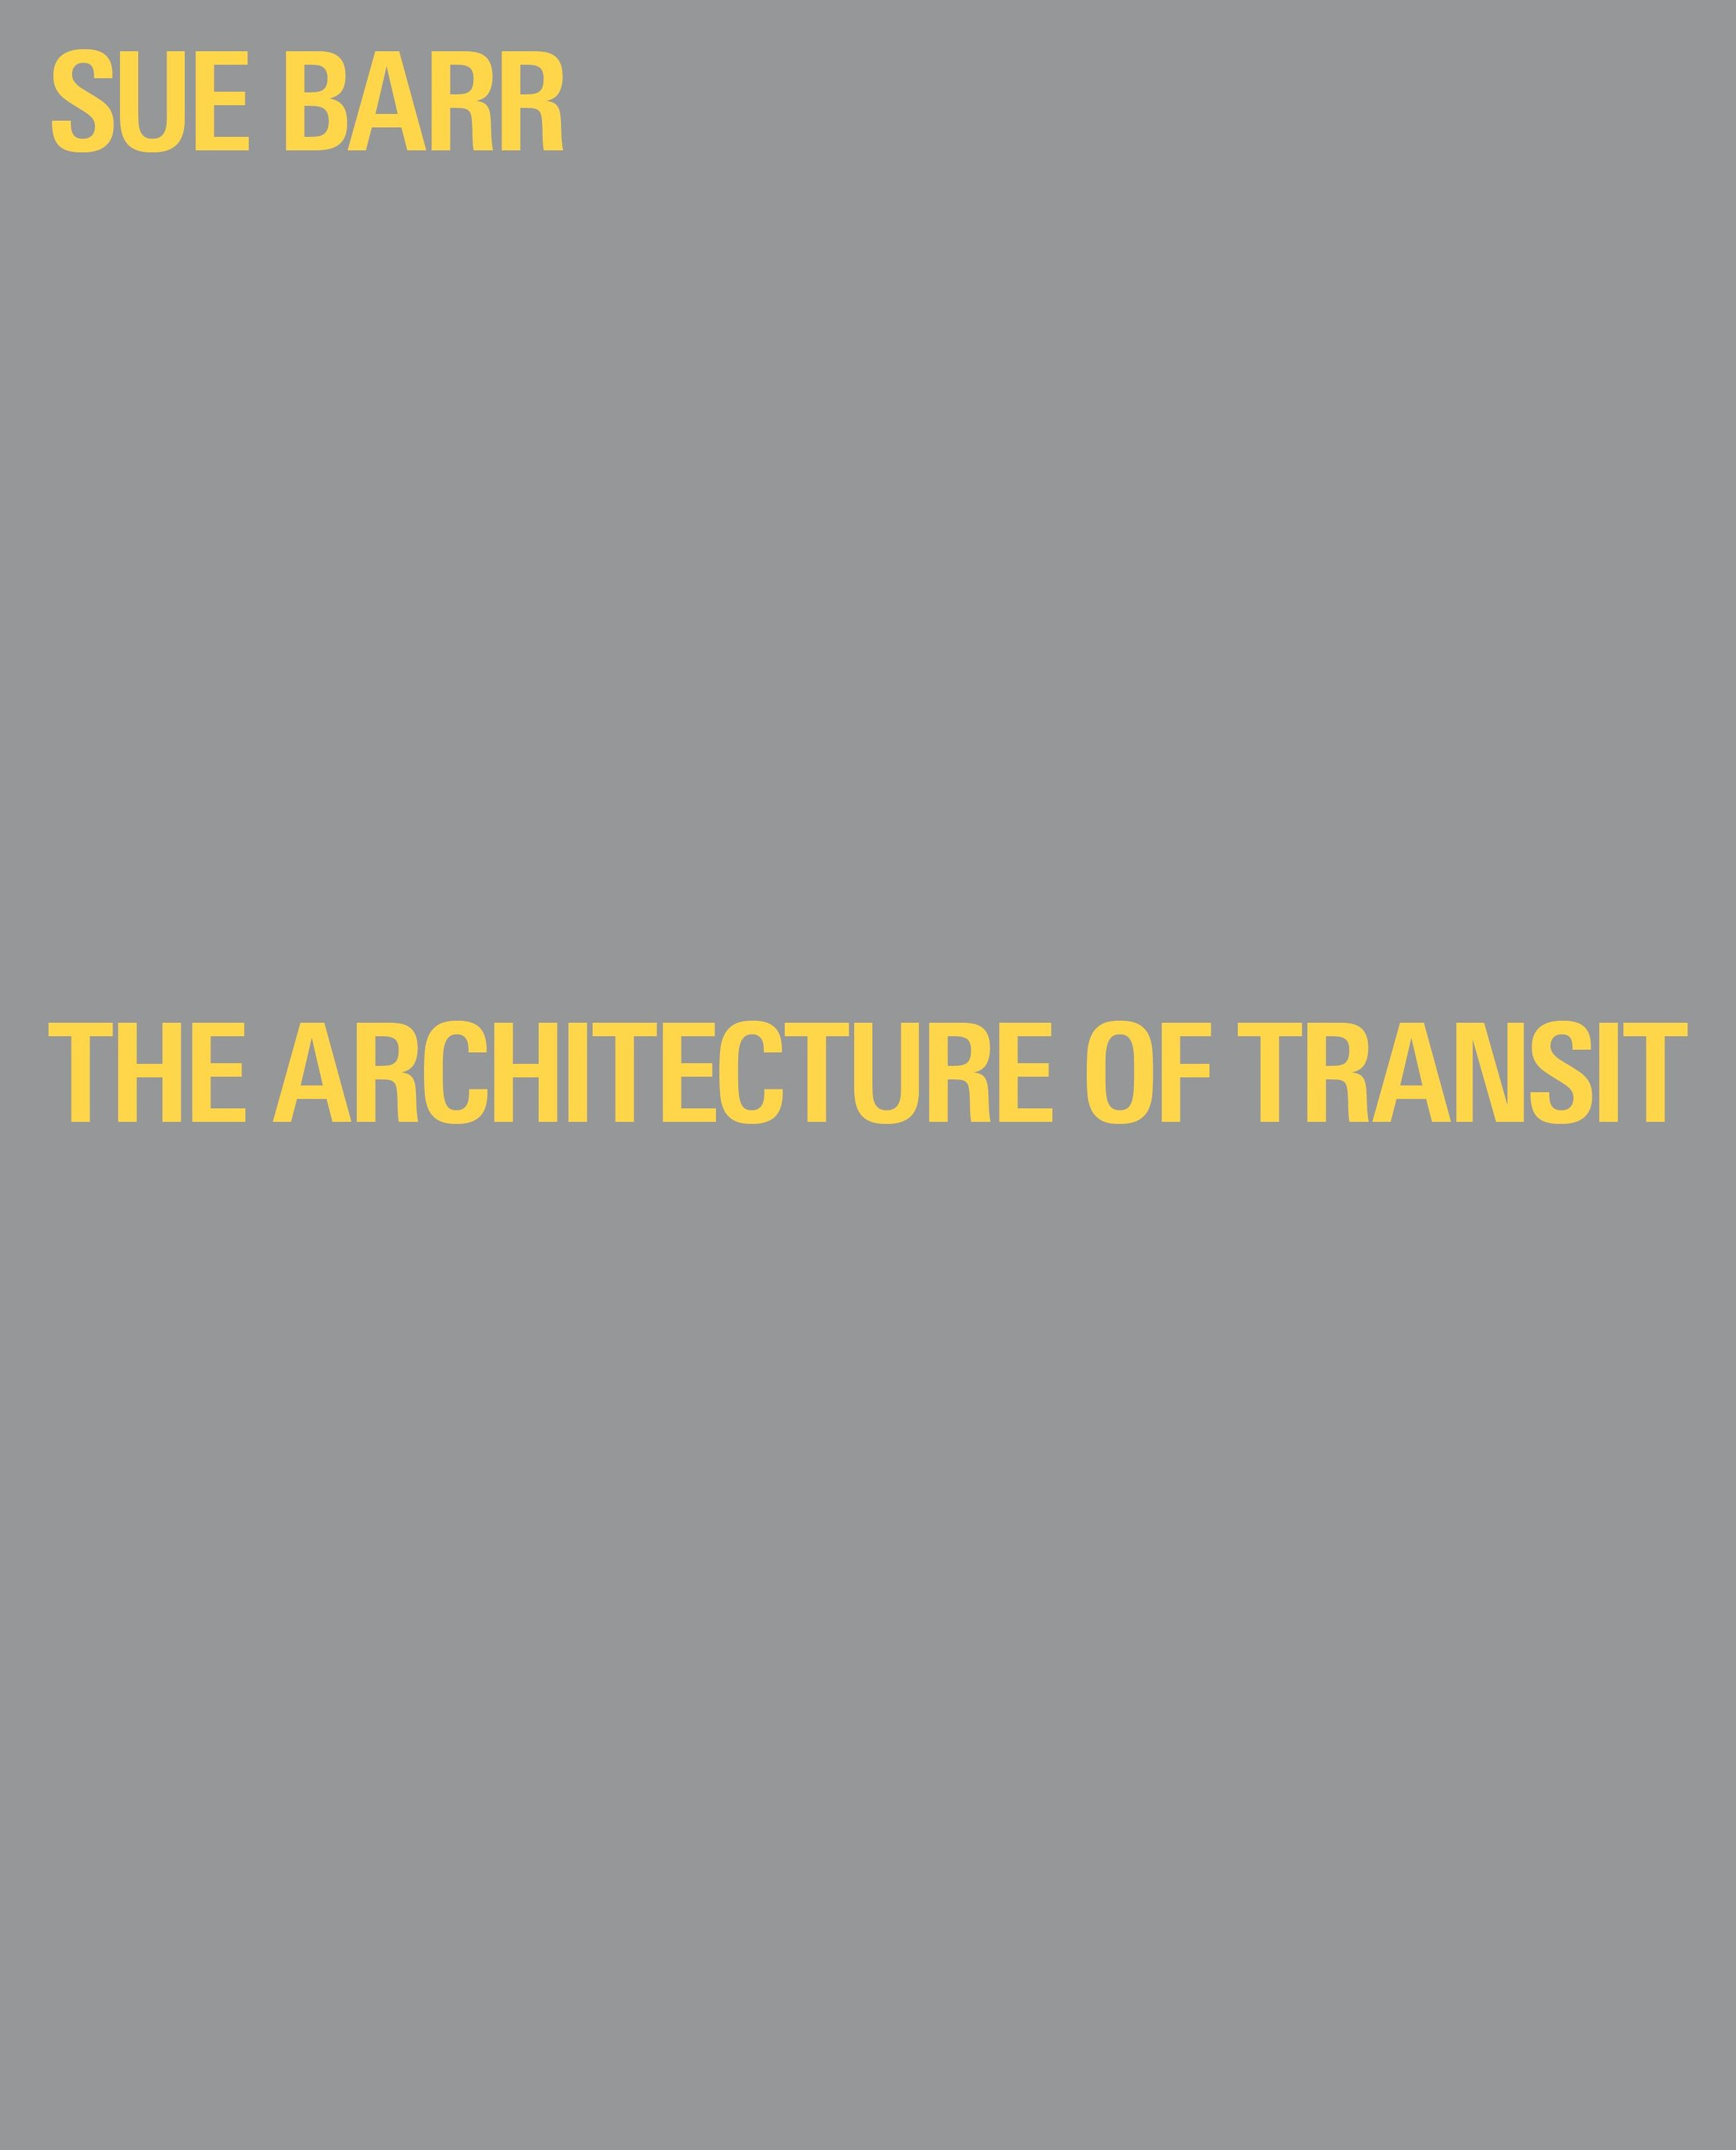 Sue Barr Architecture of Transit Cover.jpeg